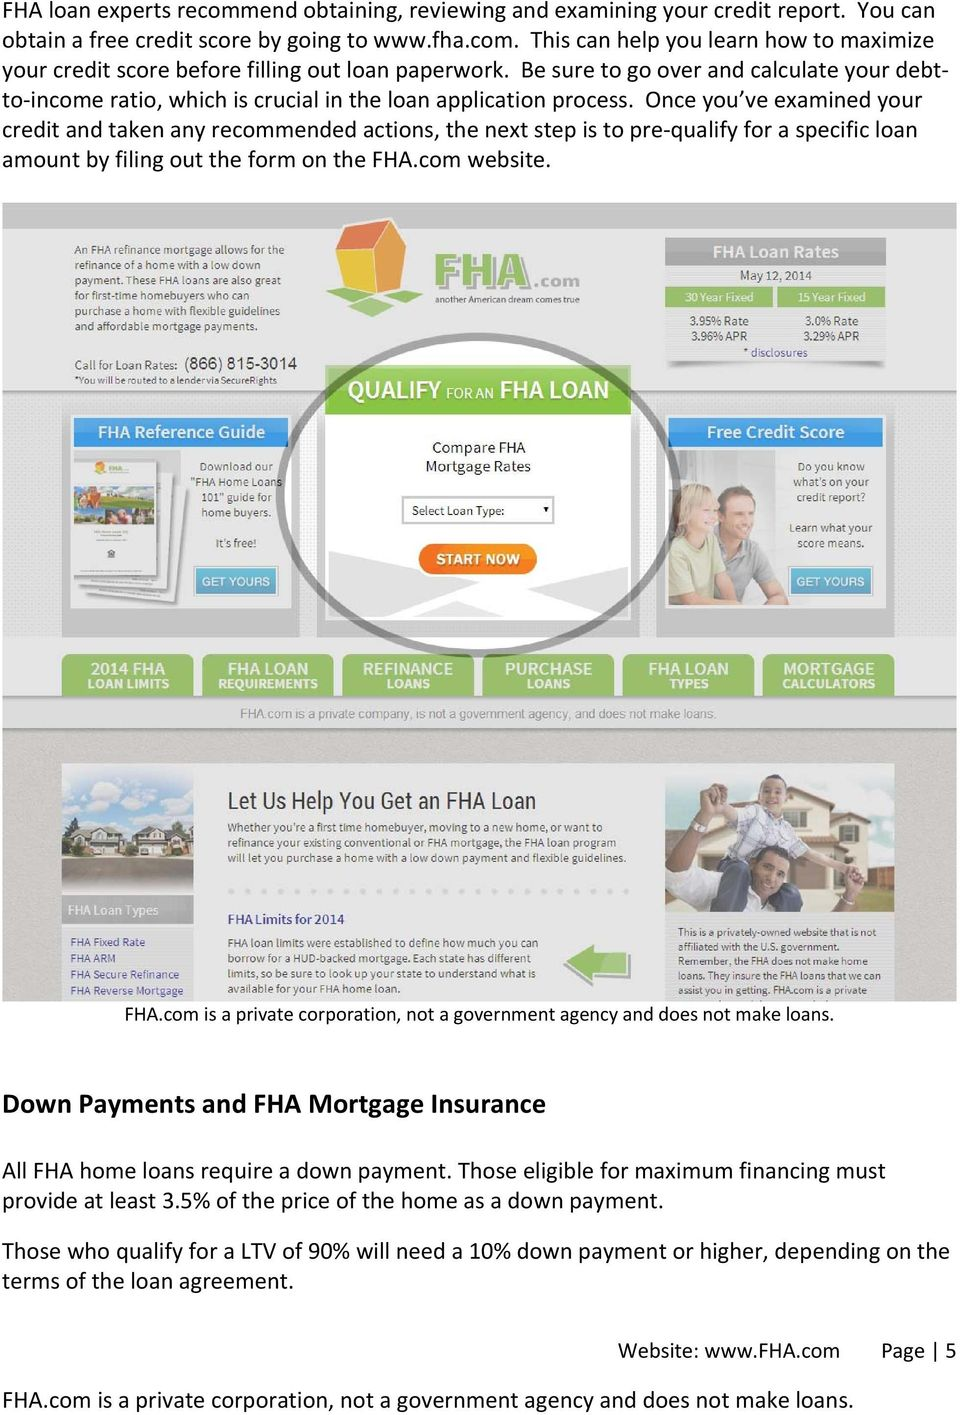 Once you ve examined your credit and taken any recommended actions, the next step is to pre qualify for a specific loan amount by filing out the form on the FHA.com website.